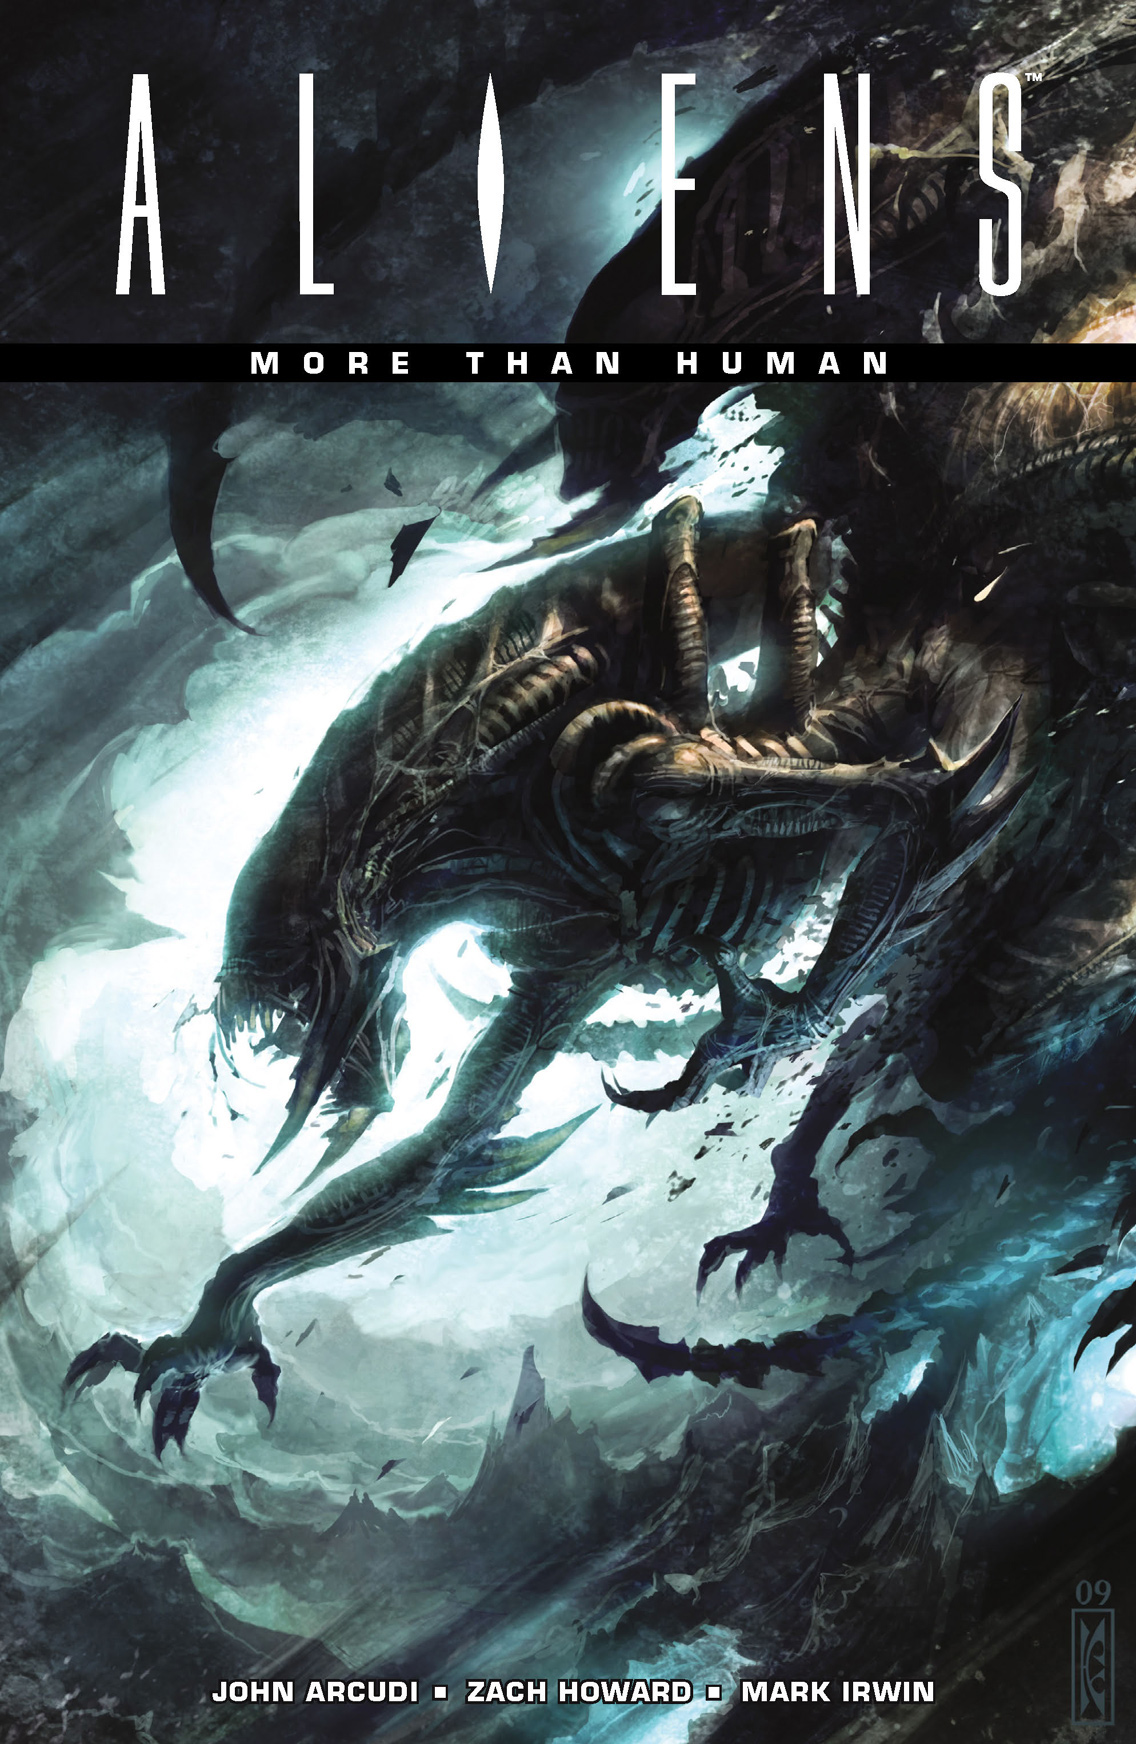 Aliens: More Than Human By: John Arcudi,  Zach Howard (Penciller),  Mark Irwin (Inker),  Wes Dzioba (Colorist),  Raymond Swanland (Cover Artist)